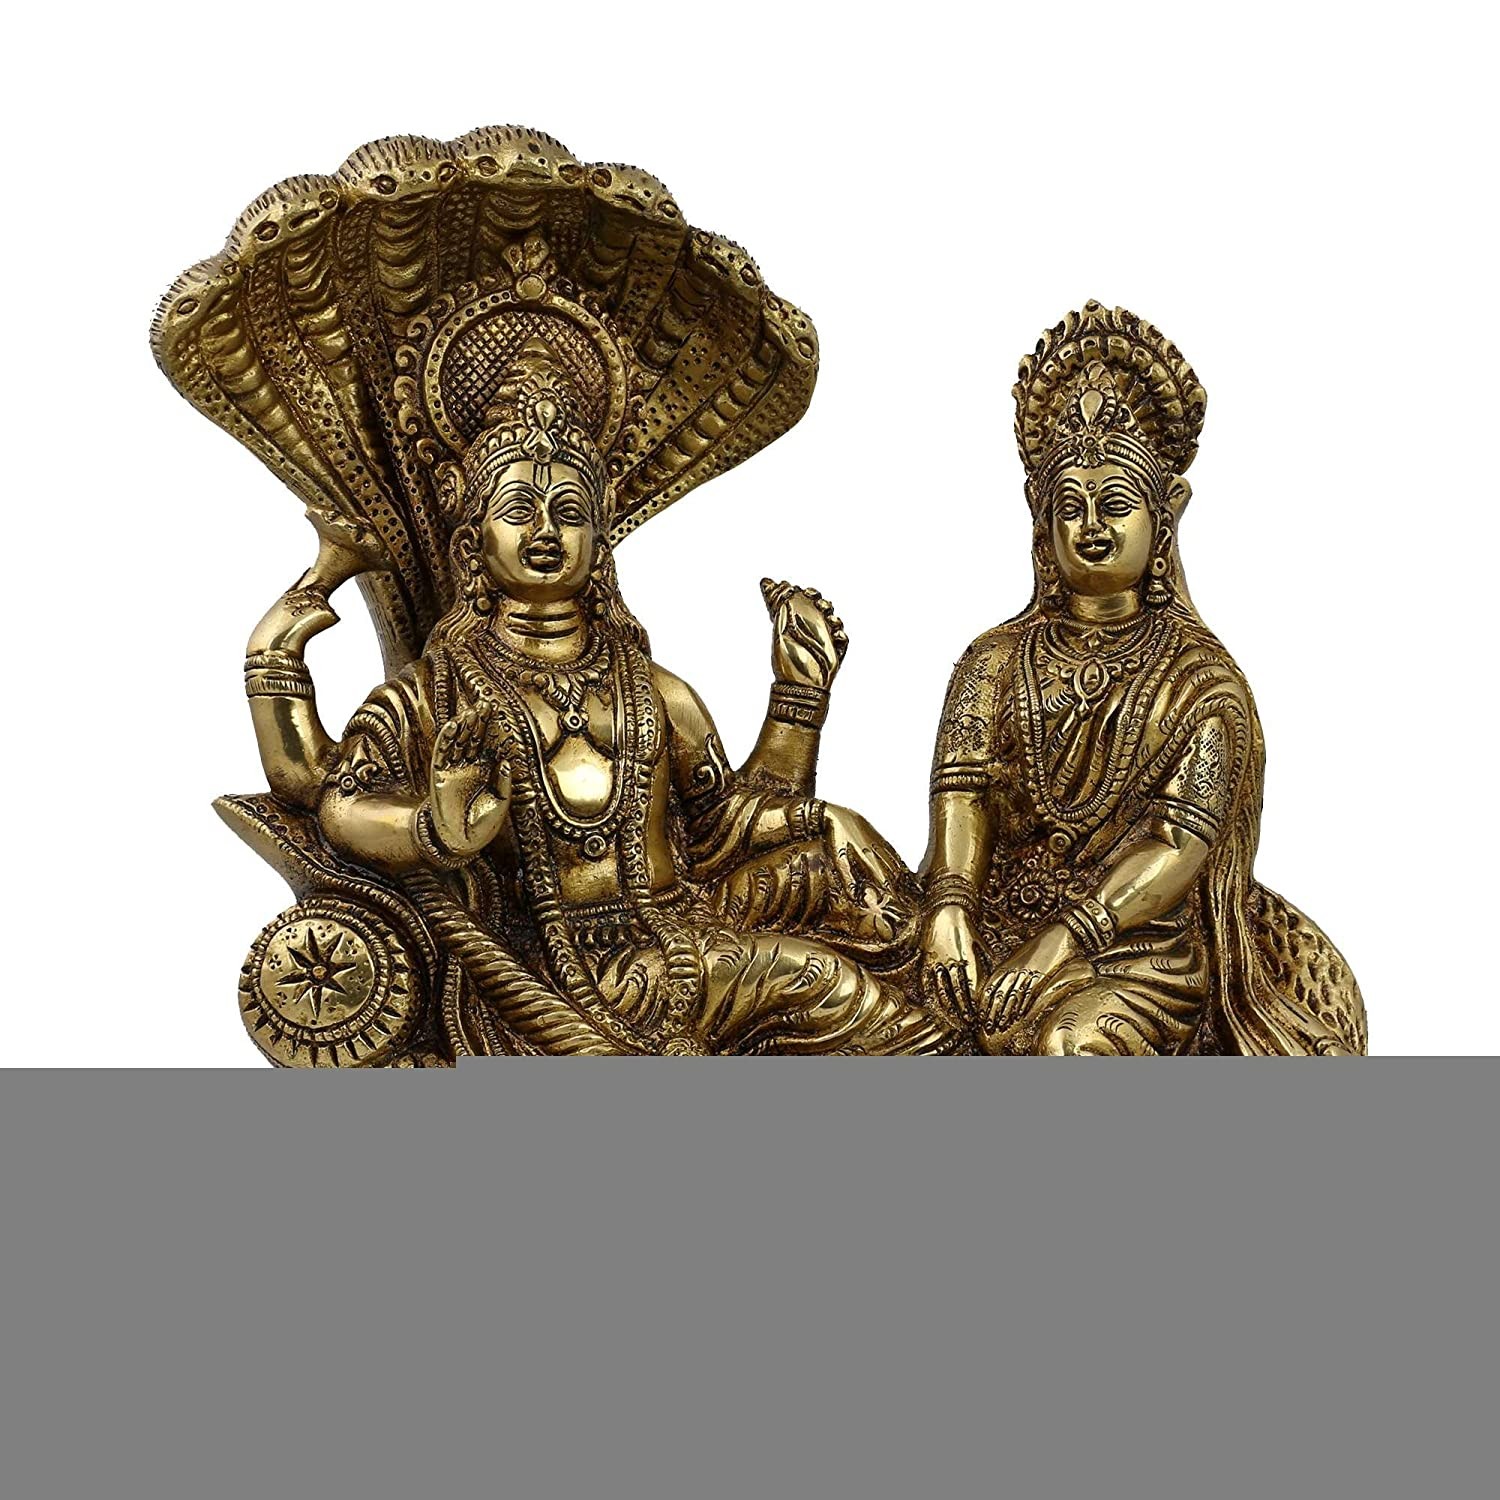 Statue Vishnu Lakshmi Hindu Art Sculpture Home Décor; Brass; 7 X 3.5 X 8.5 Inches